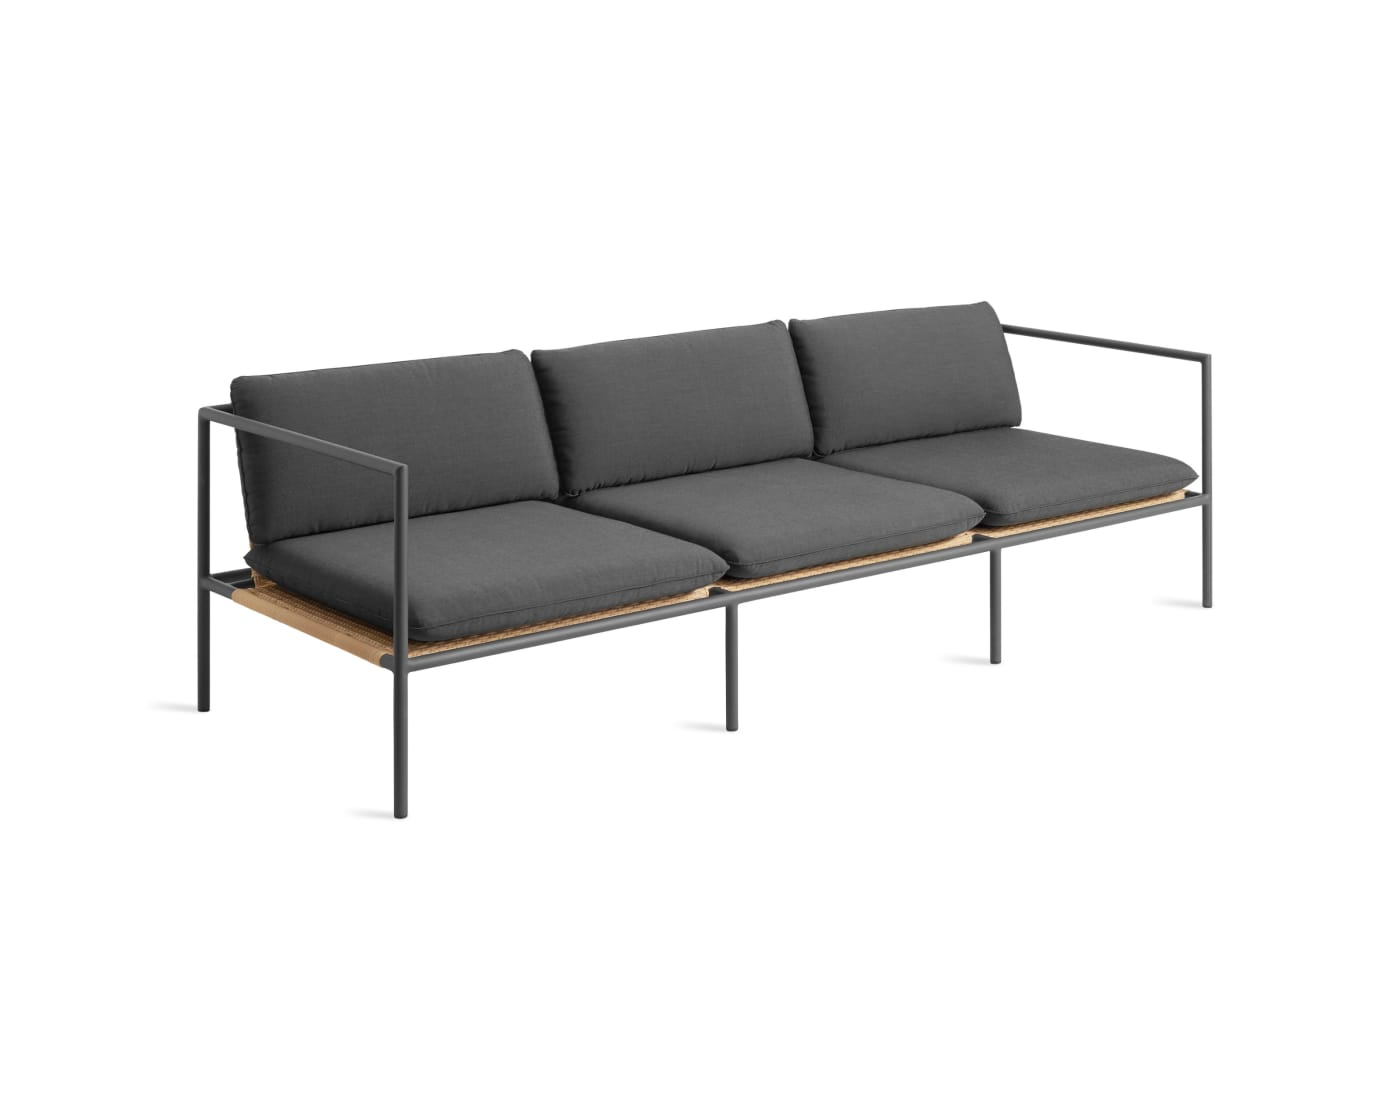 Dog Days Outdoor 3 Seat Sofa